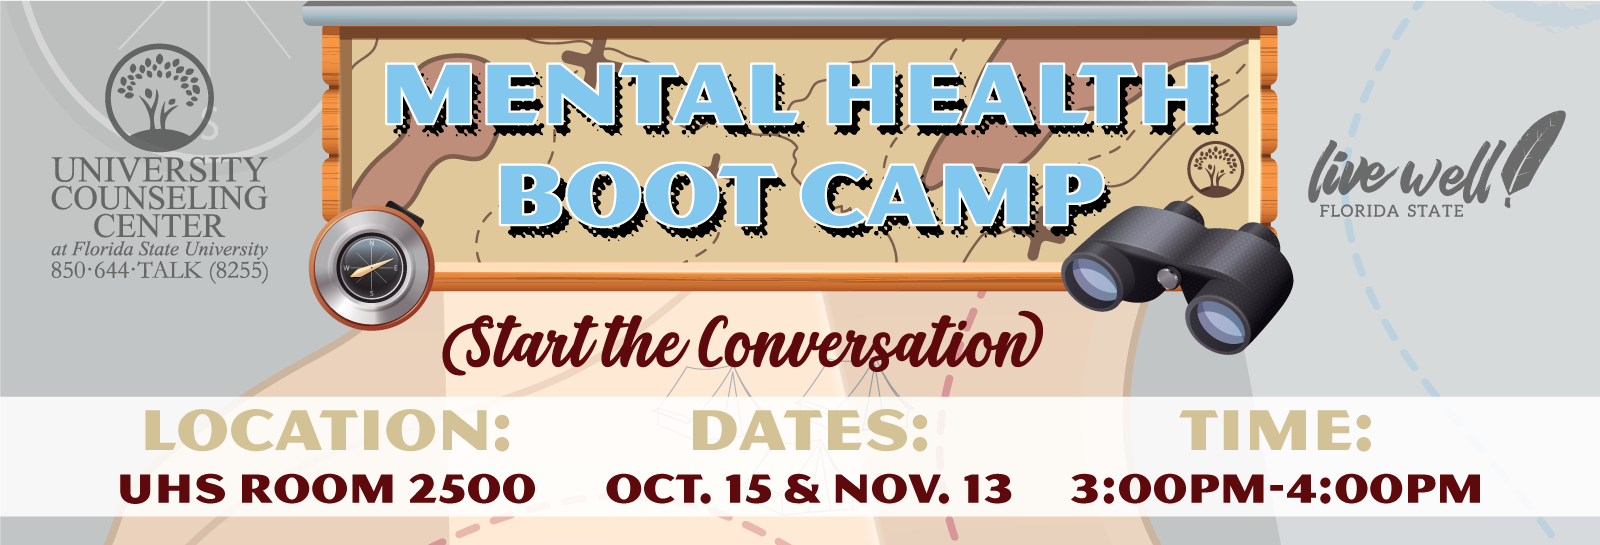 Mental Health Boot Camp